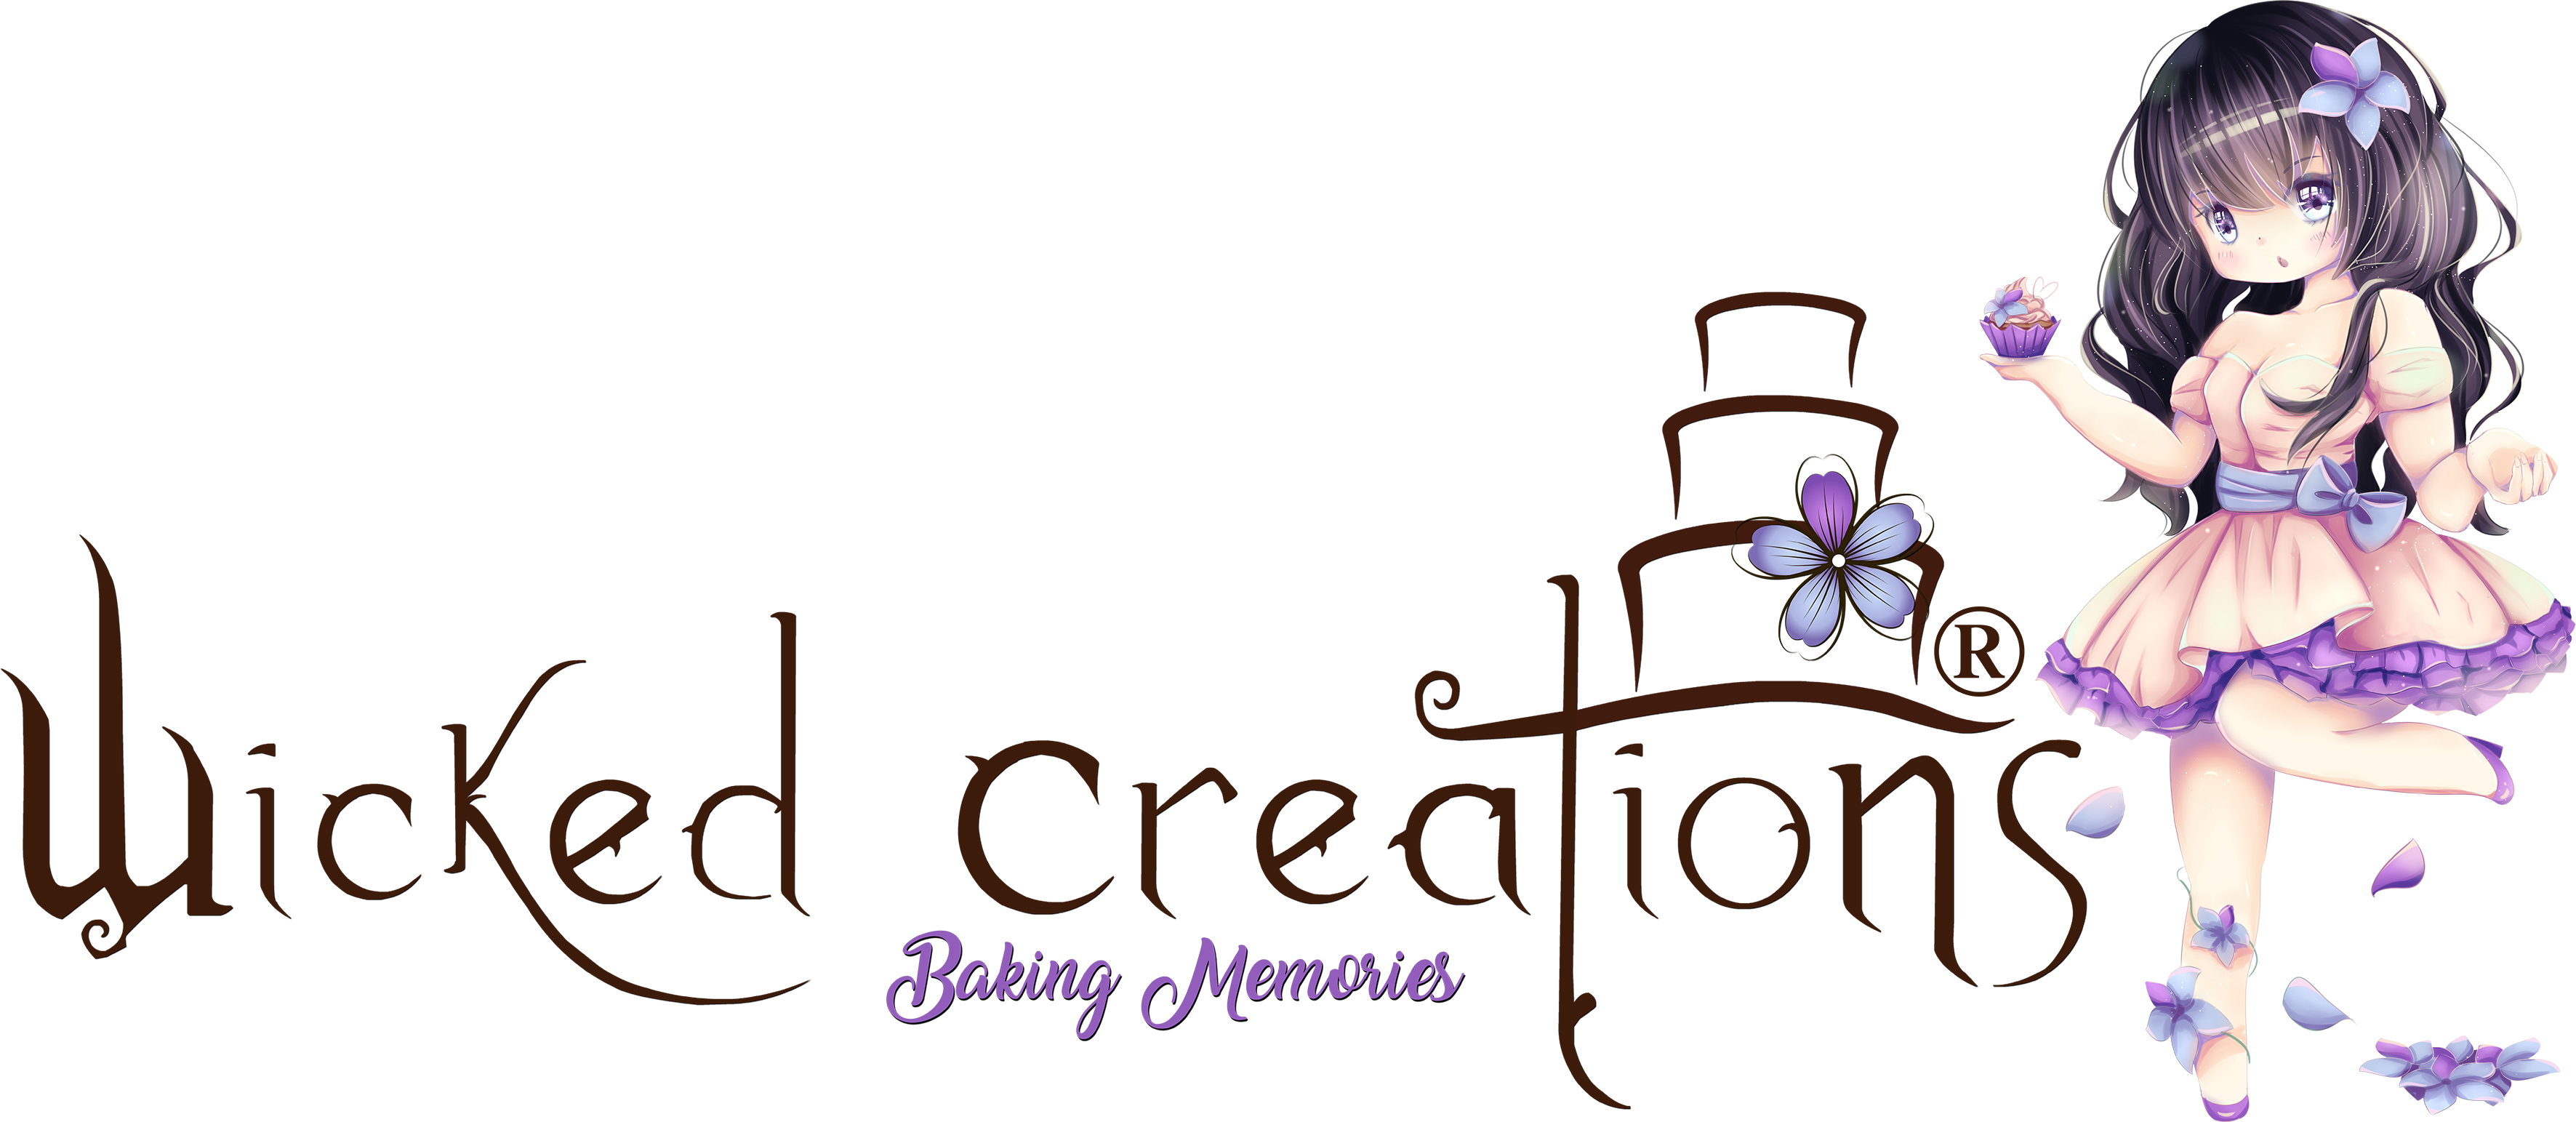 Wicked Creations Bakery